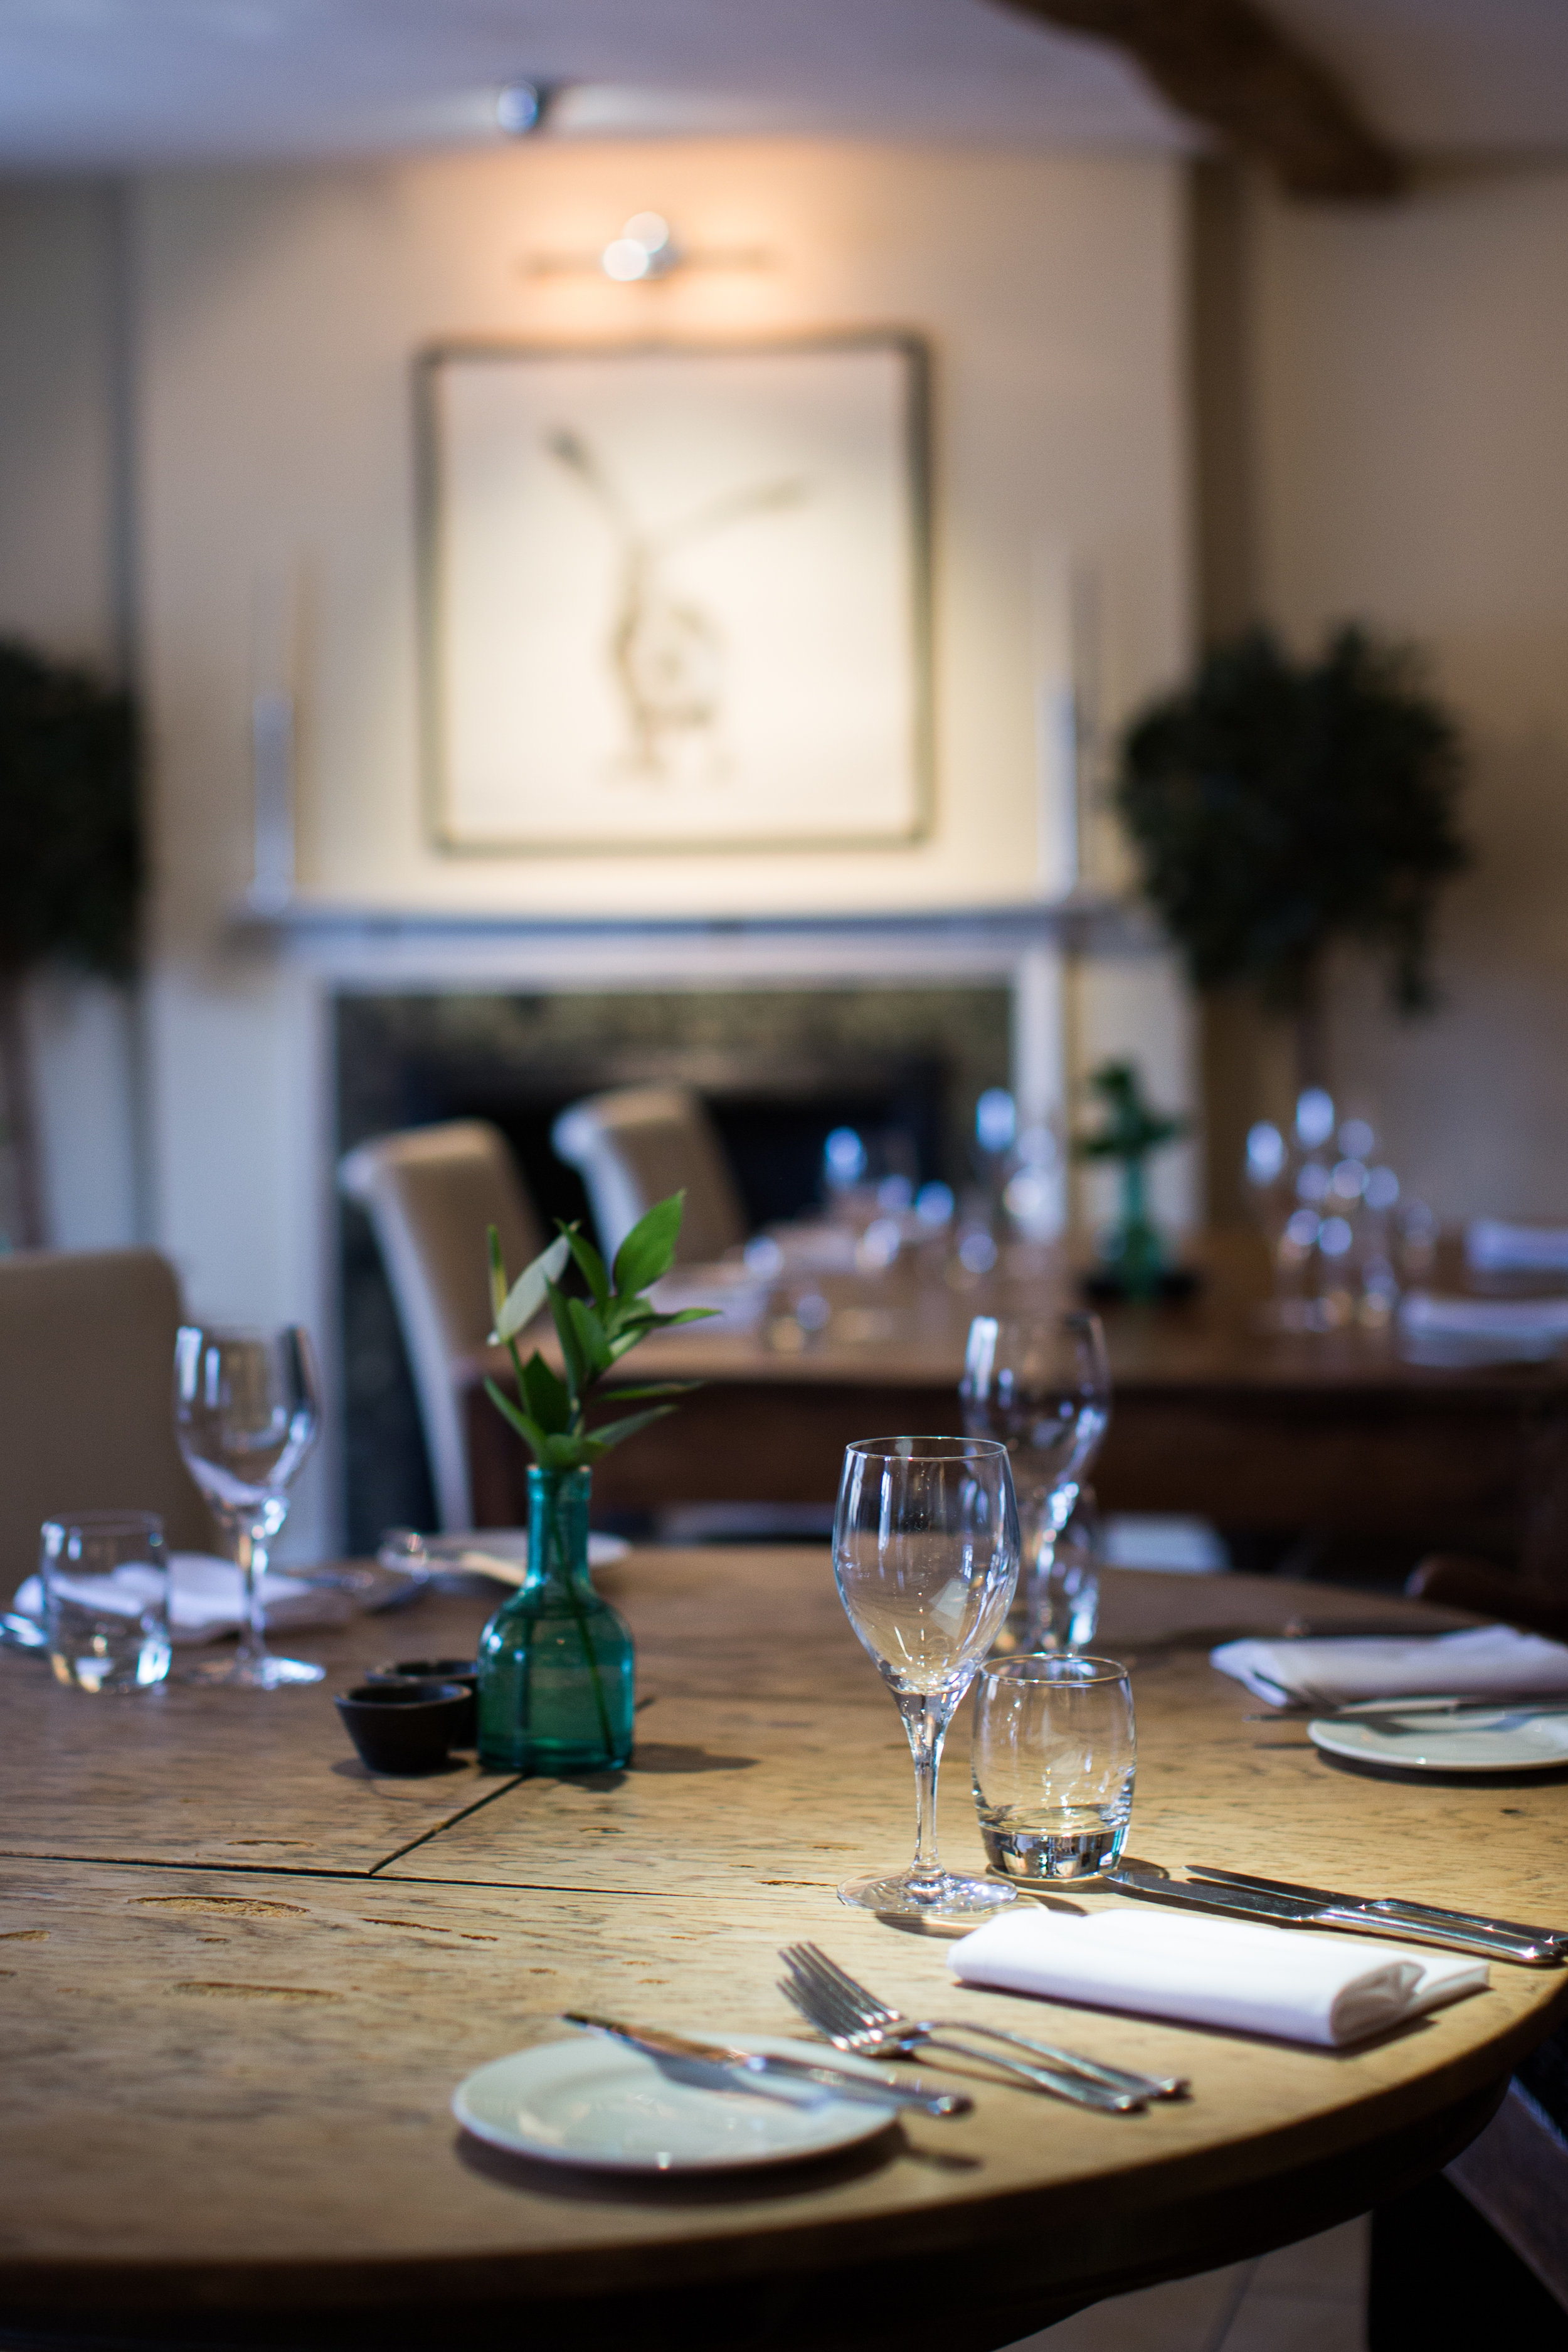 The restaurant at the Kings Hotel Chipping Campden